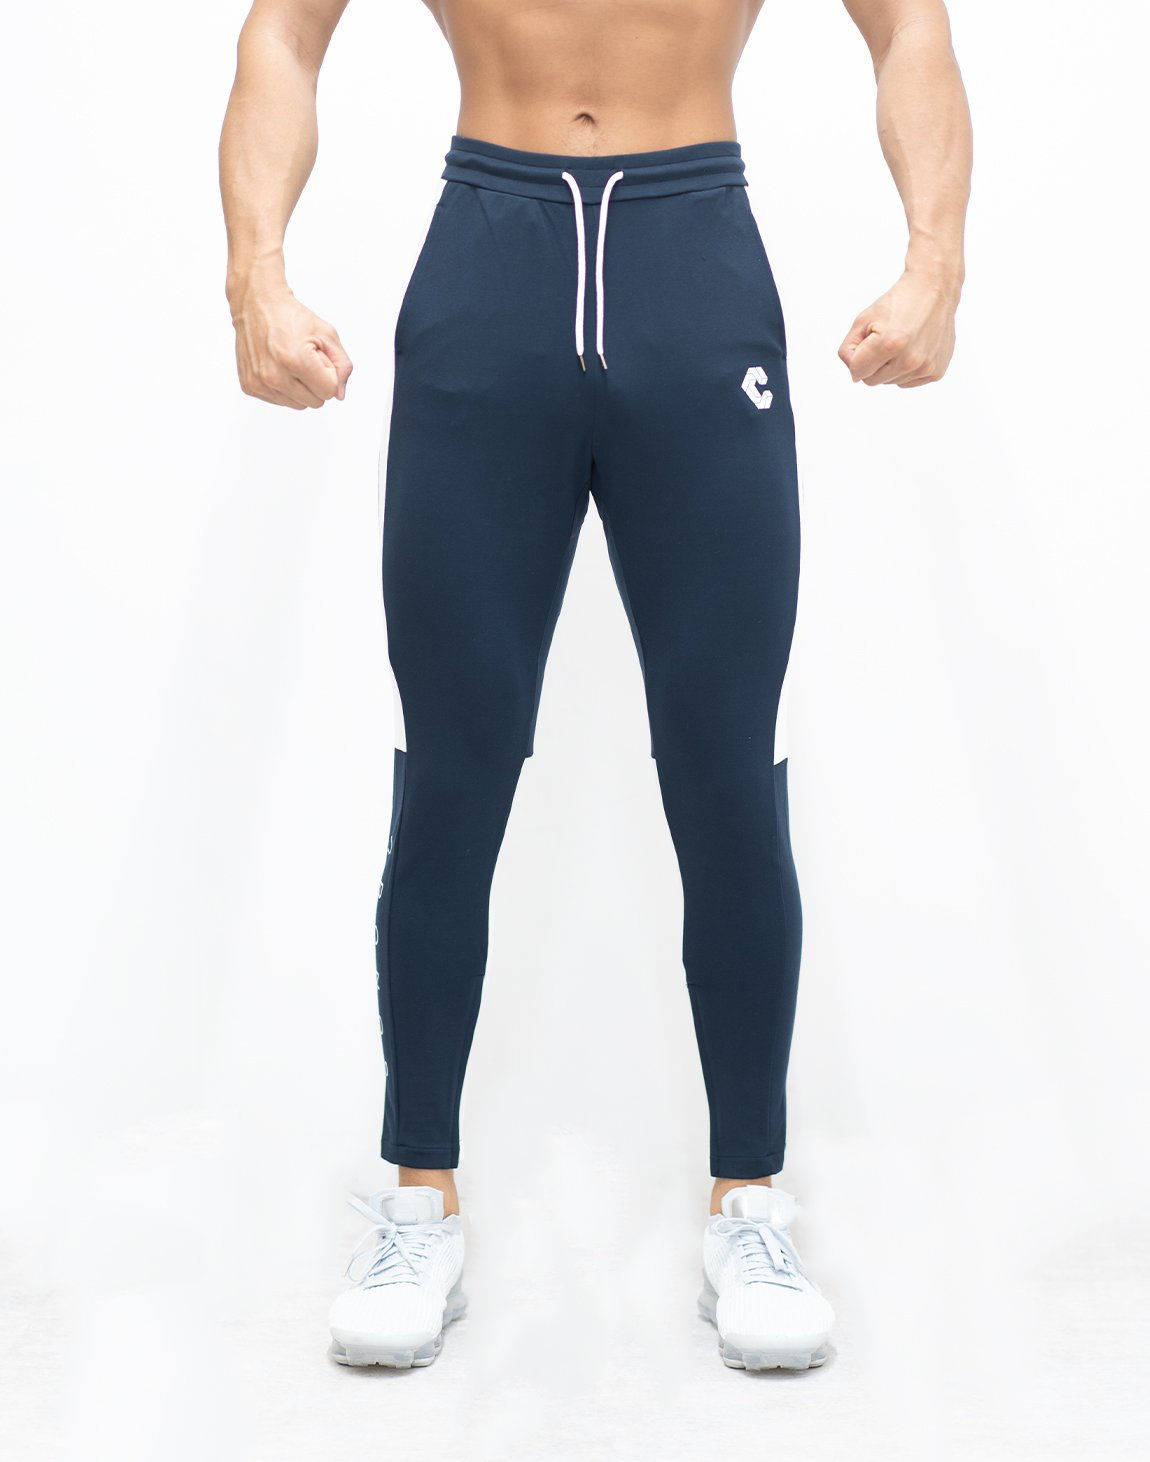 <img class='new_mark_img1' src='https://img.shop-pro.jp/img/new/icons1.gif' style='border:none;display:inline;margin:0px;padding:0px;width:auto;' />CRONOS SIDE HALF LINE PANTS 【NAVY】